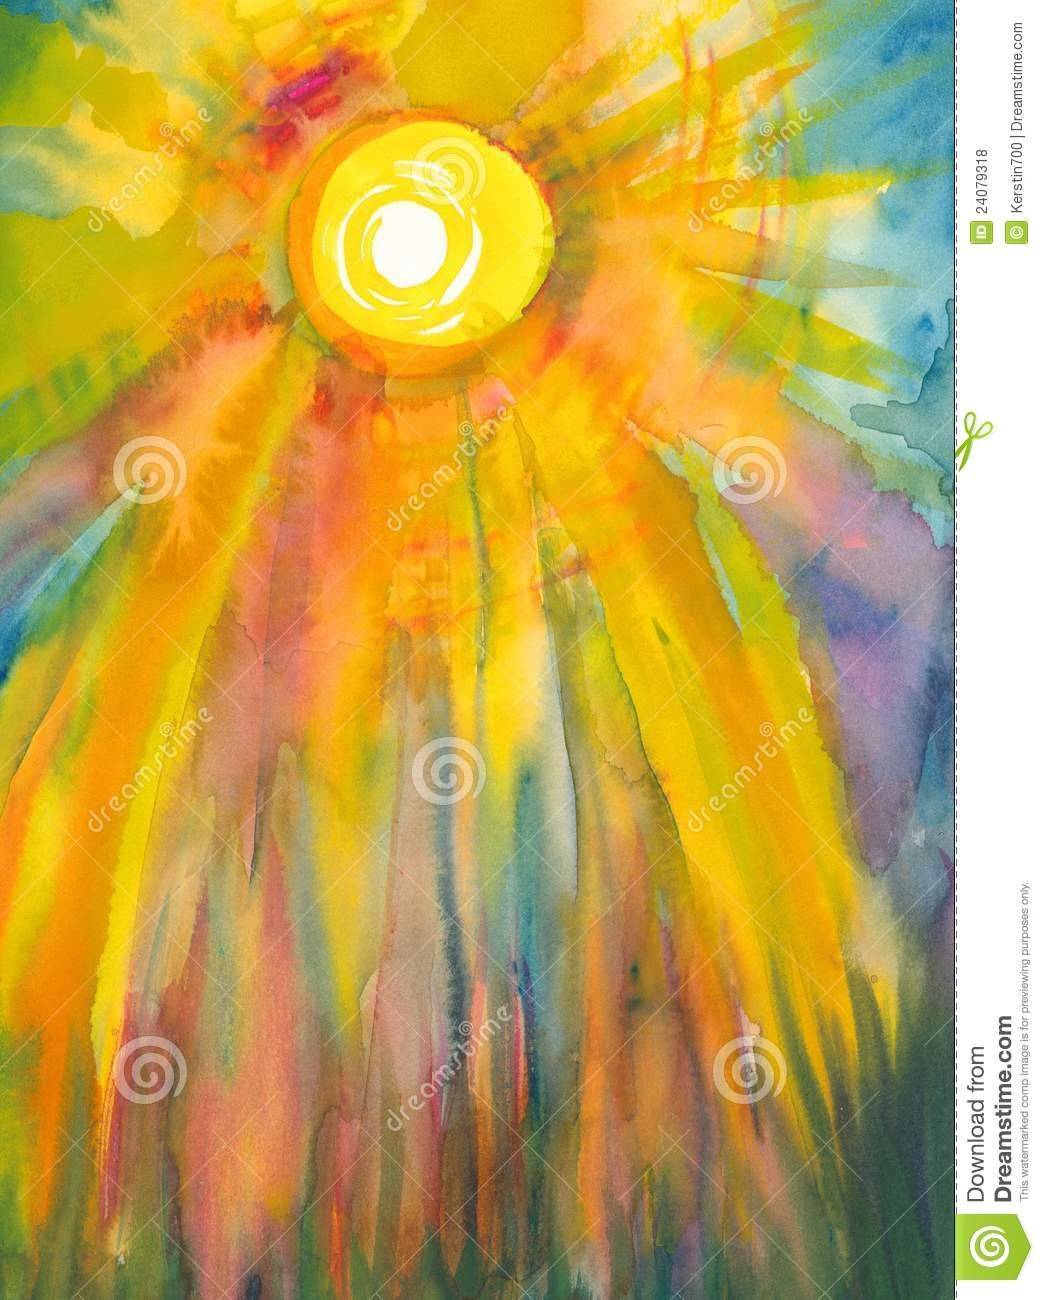 Sun Watercolor Painting Google Search Watercolor Paintings